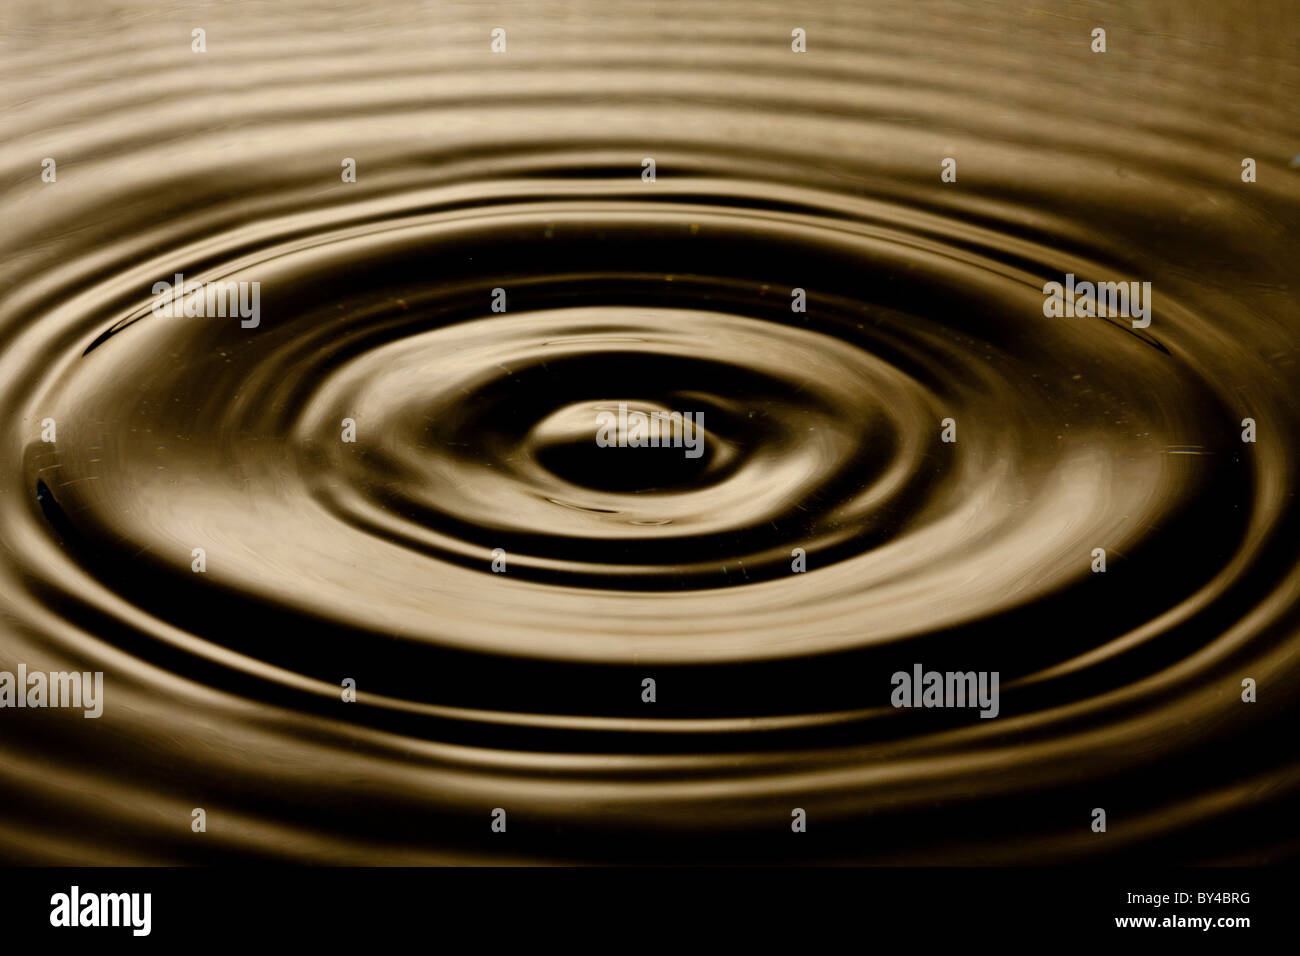 The disturbance of the water just as a water drop has his the waters surface. - Stock Image